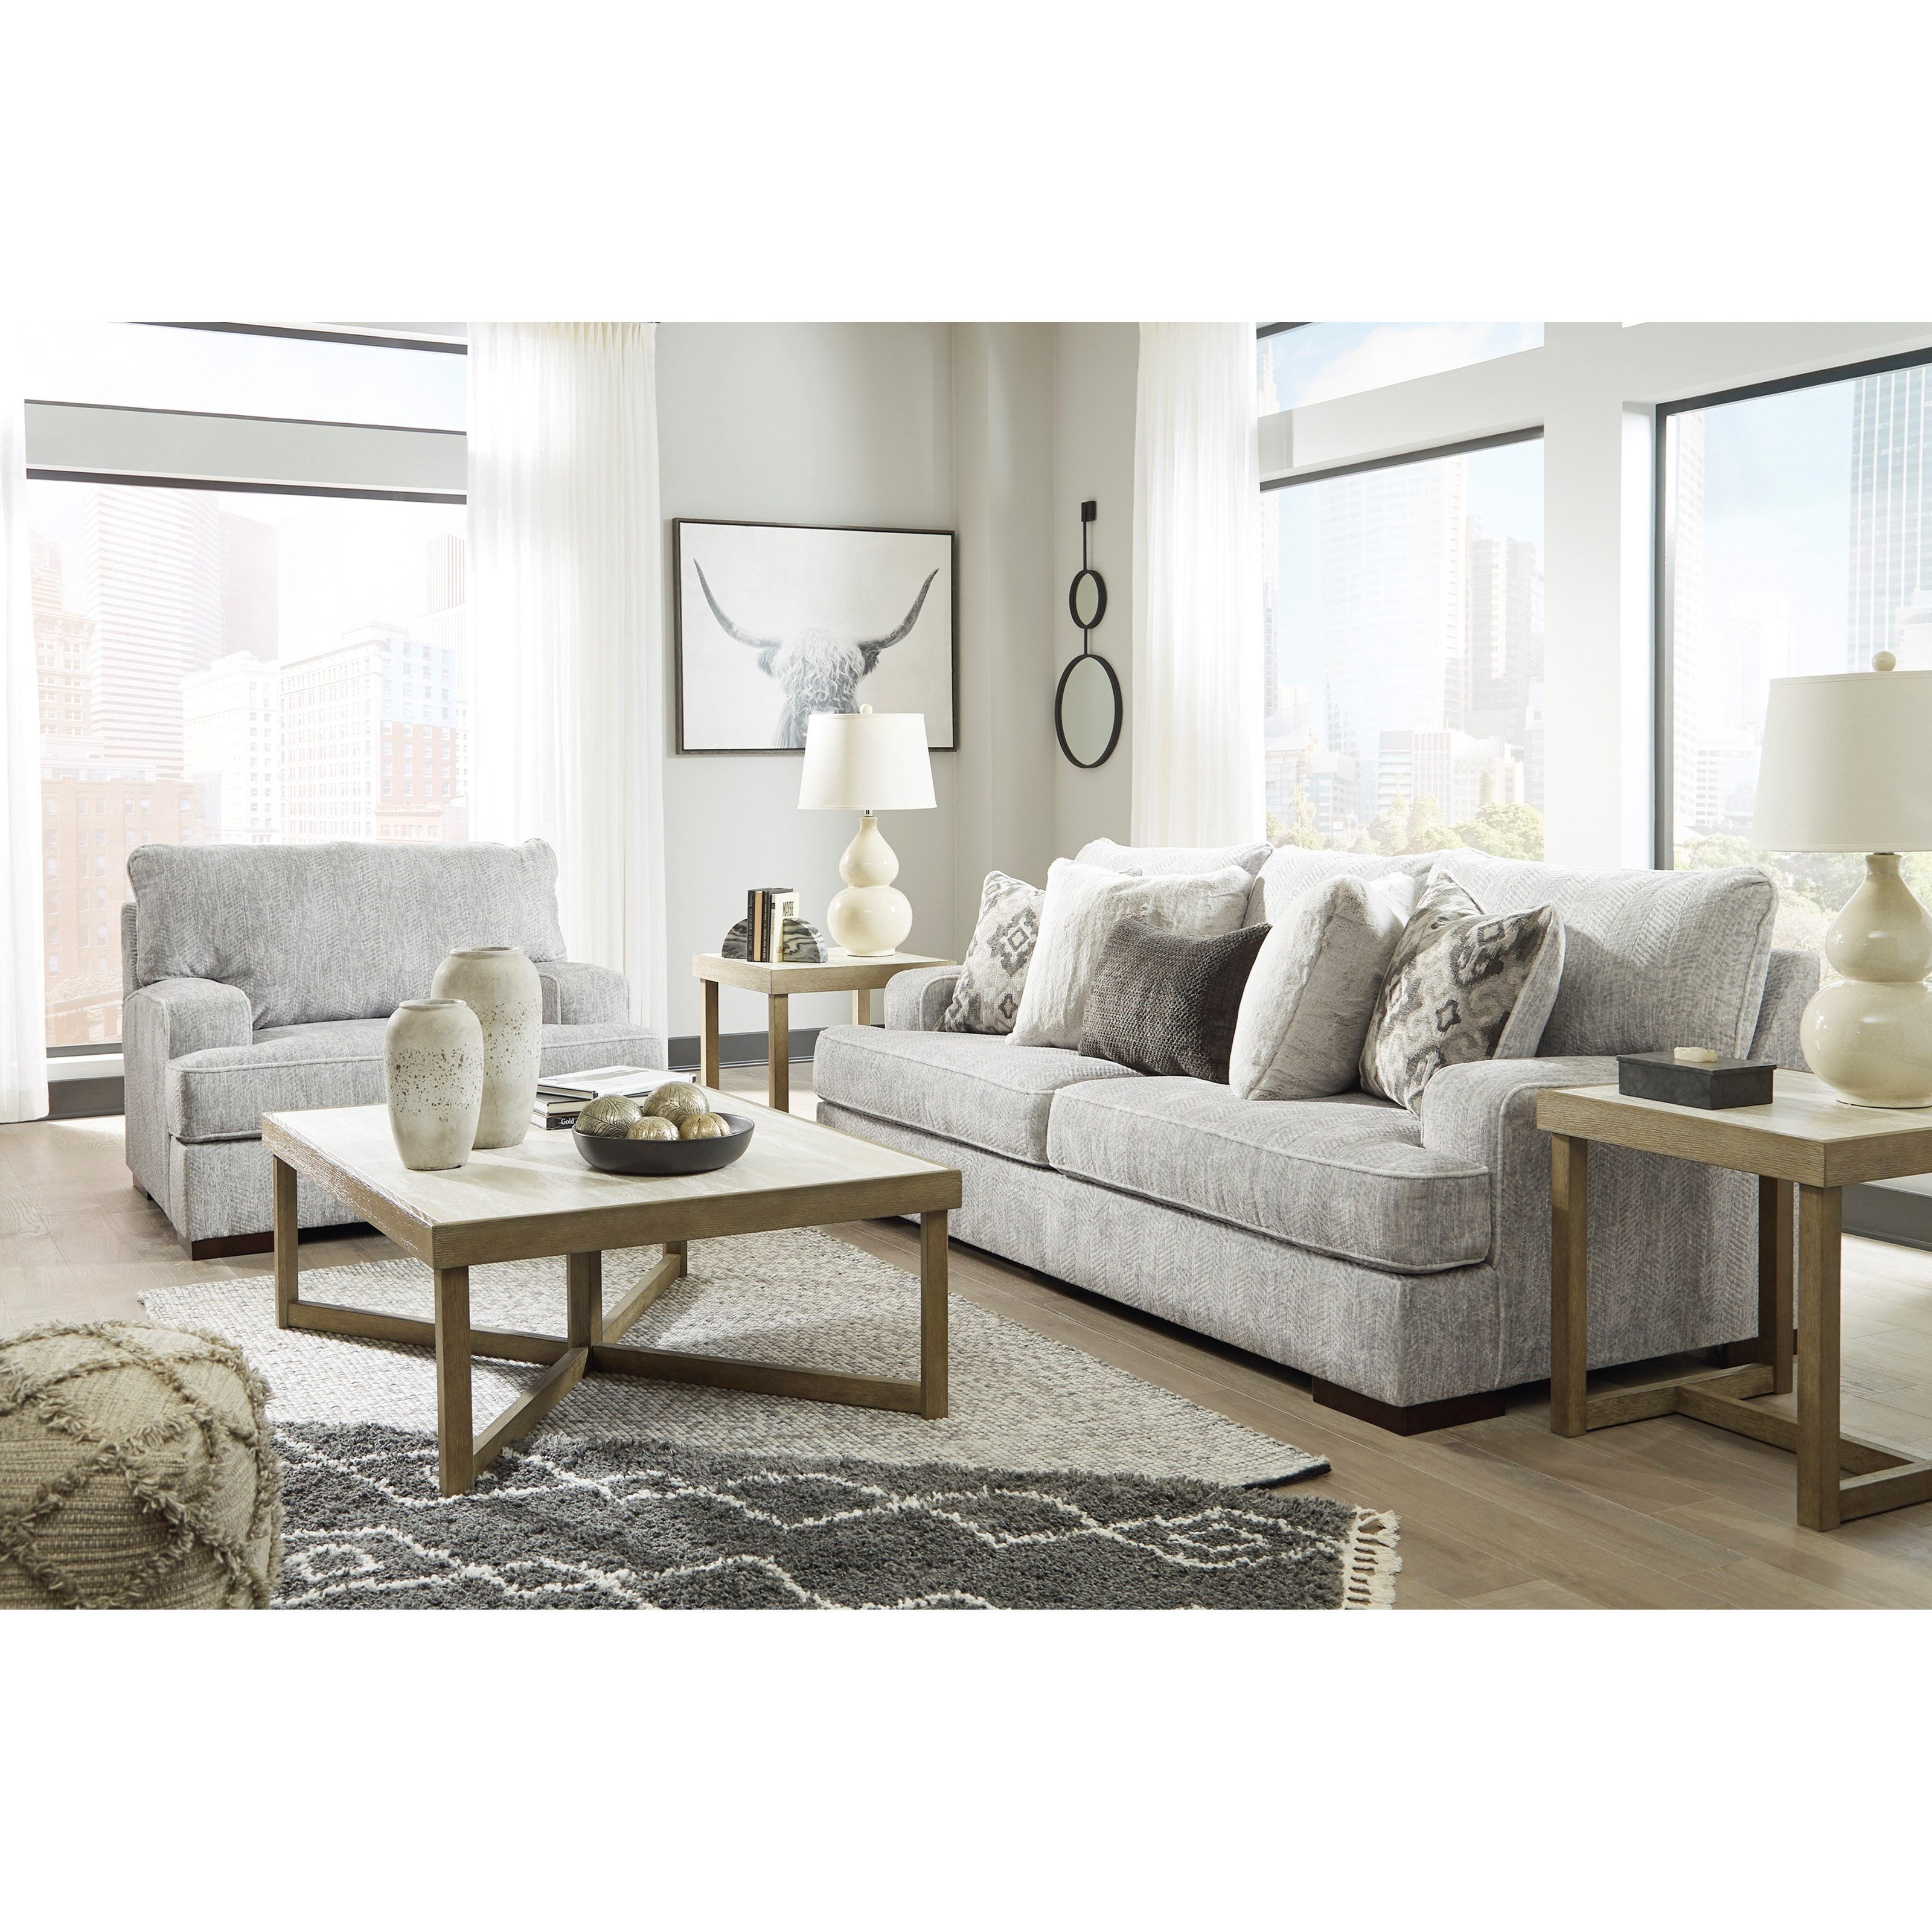 Mercado Stationary Living Room Group by Benchcraft at Northeast Factory Direct